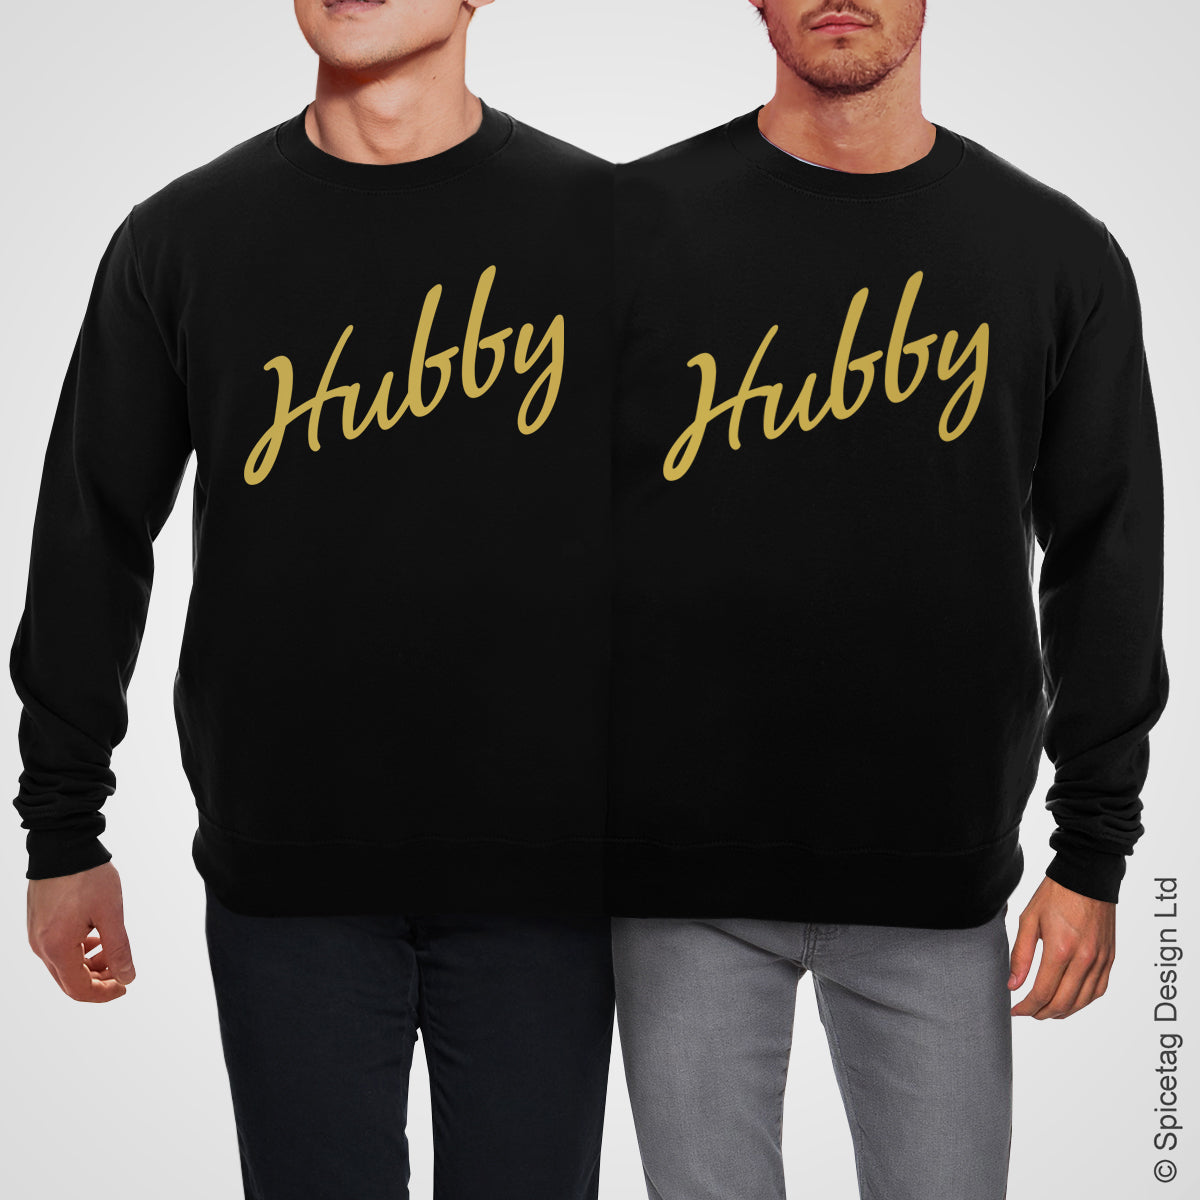 Hubby & Hubby Double Jumper